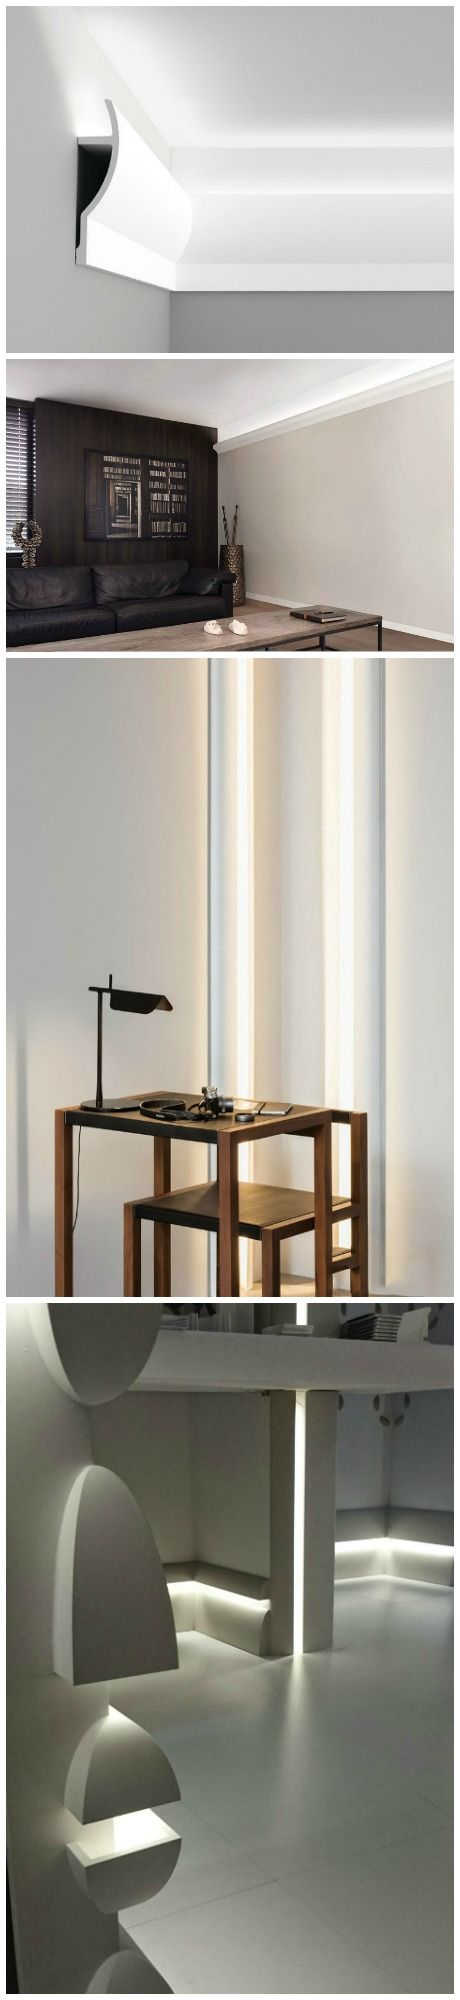 indirect lighting ideas. Install Your Very Own Cool Atmospheric Indirect Lighting In Any Room Using Easy To DIY Crown Molding And LED Rope Lighting. Ideas